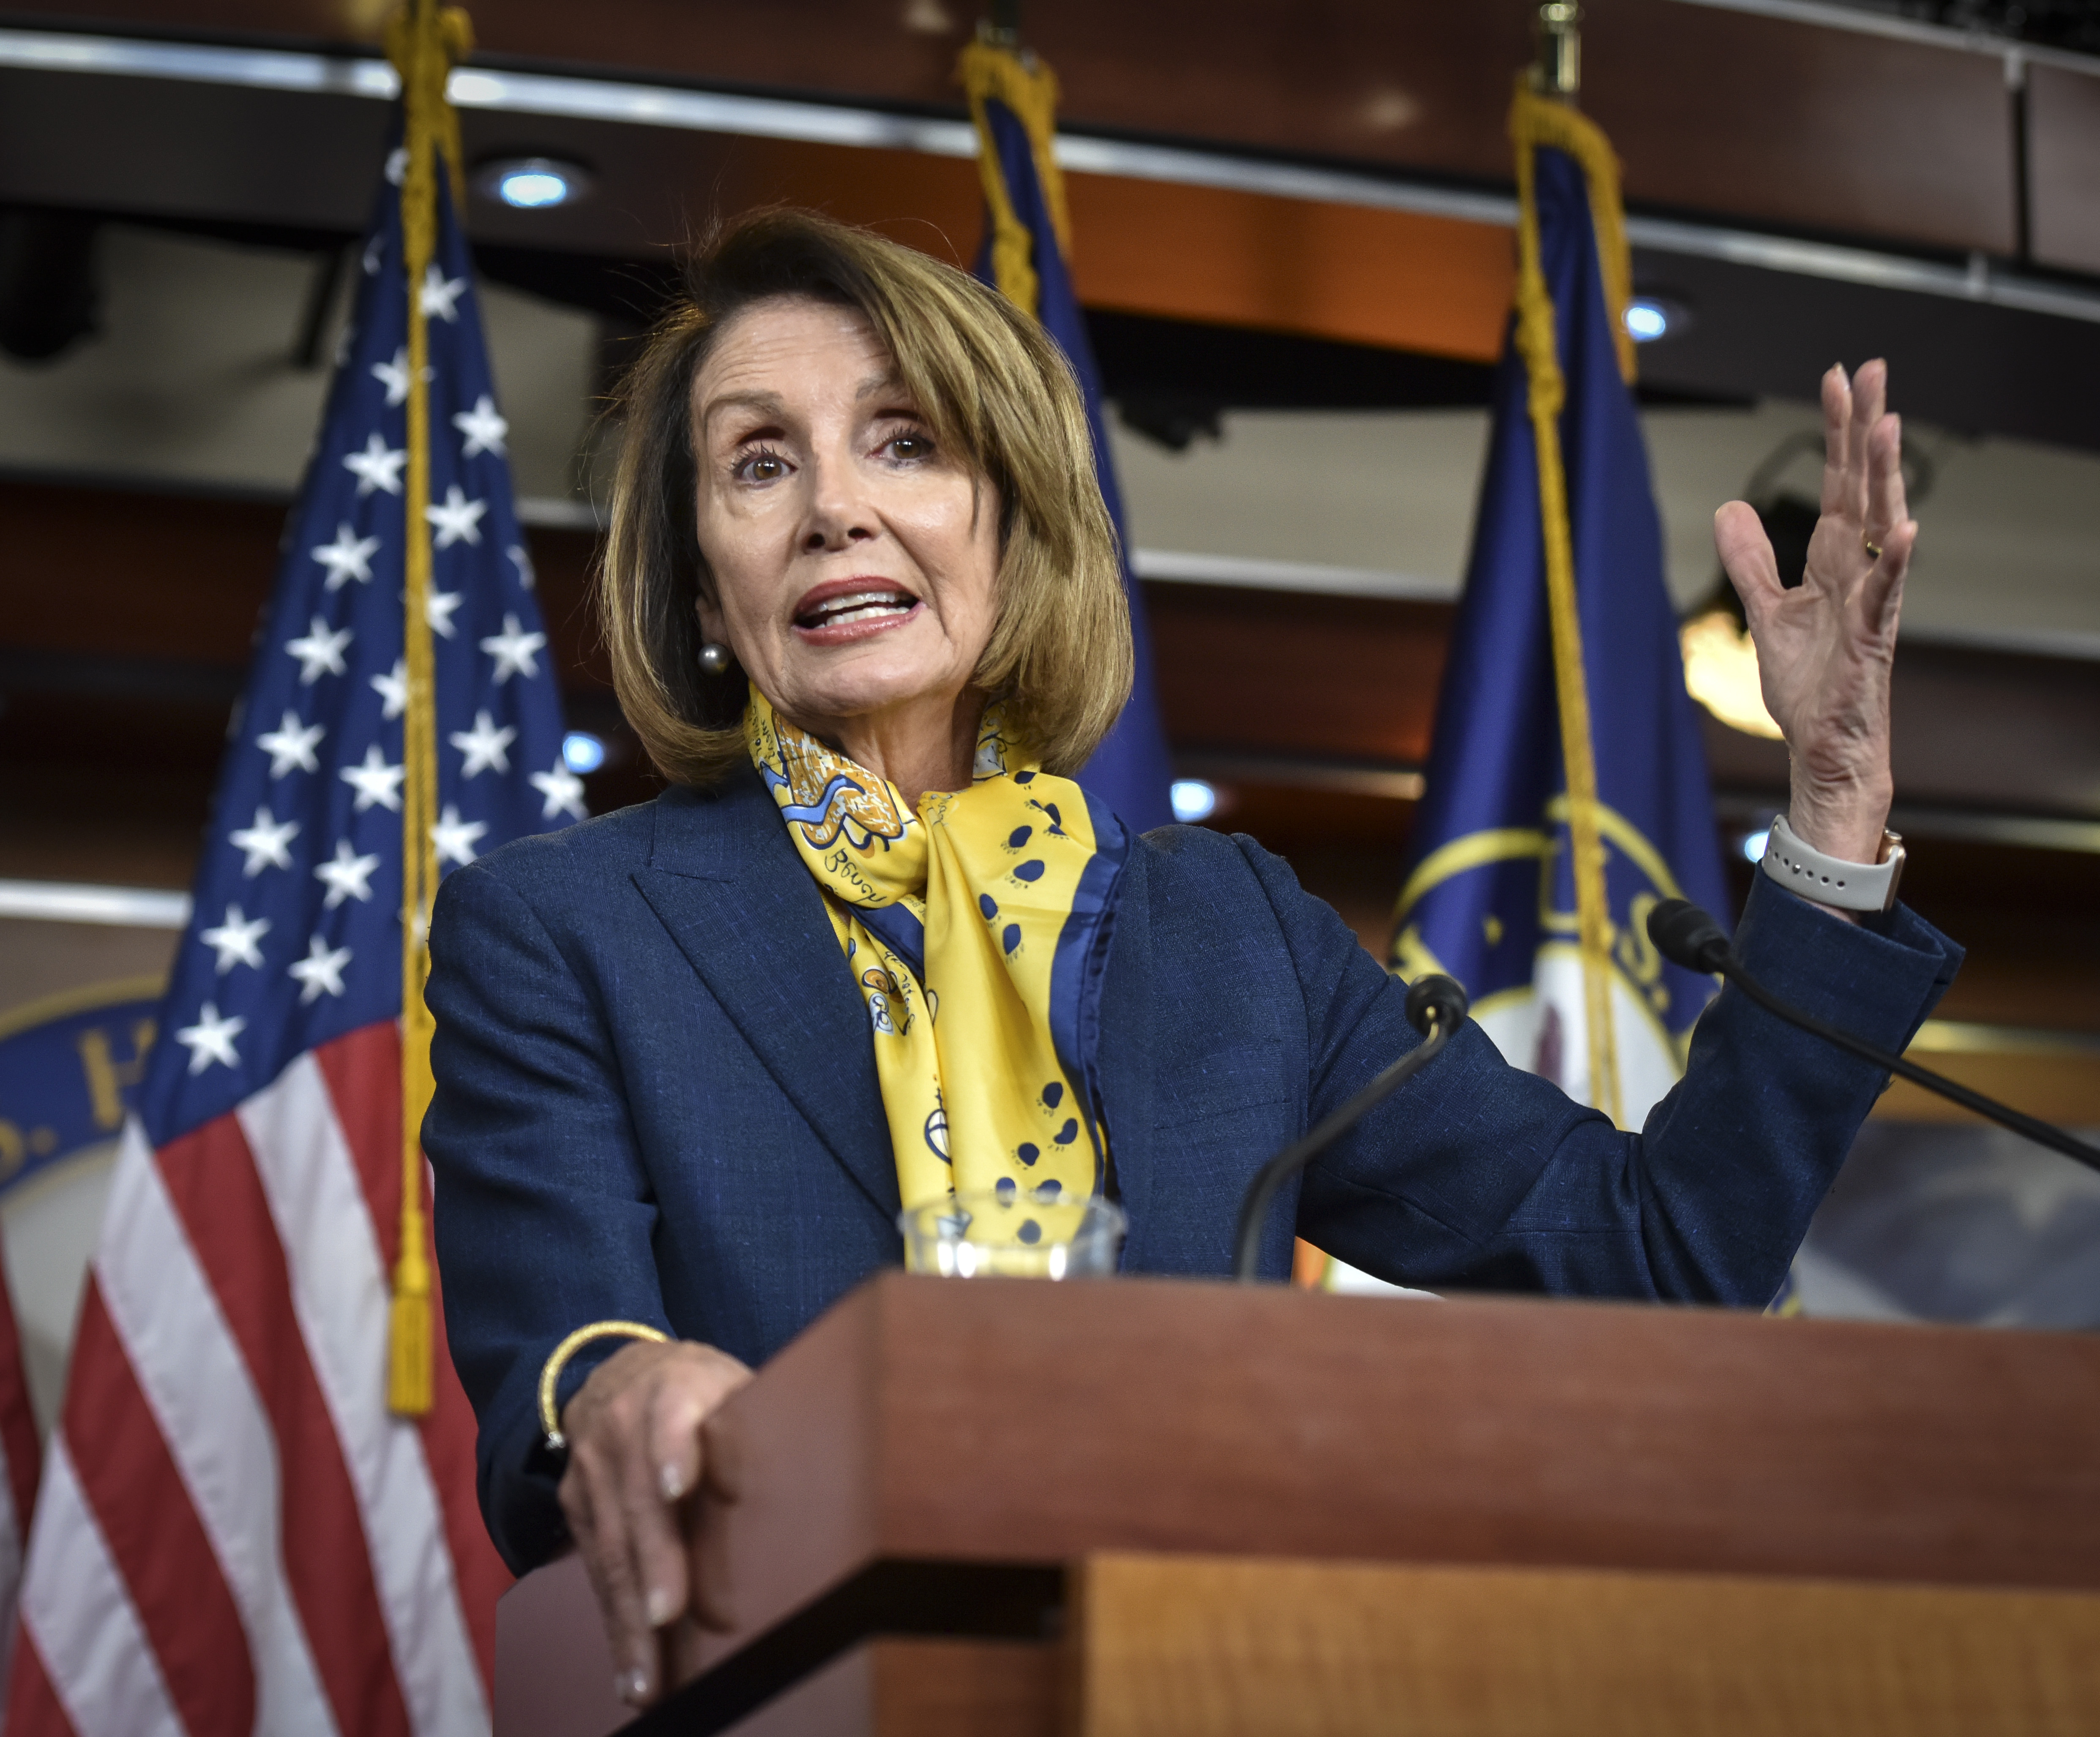 Pelosi is schooling Trump  He's a slow learner  - The